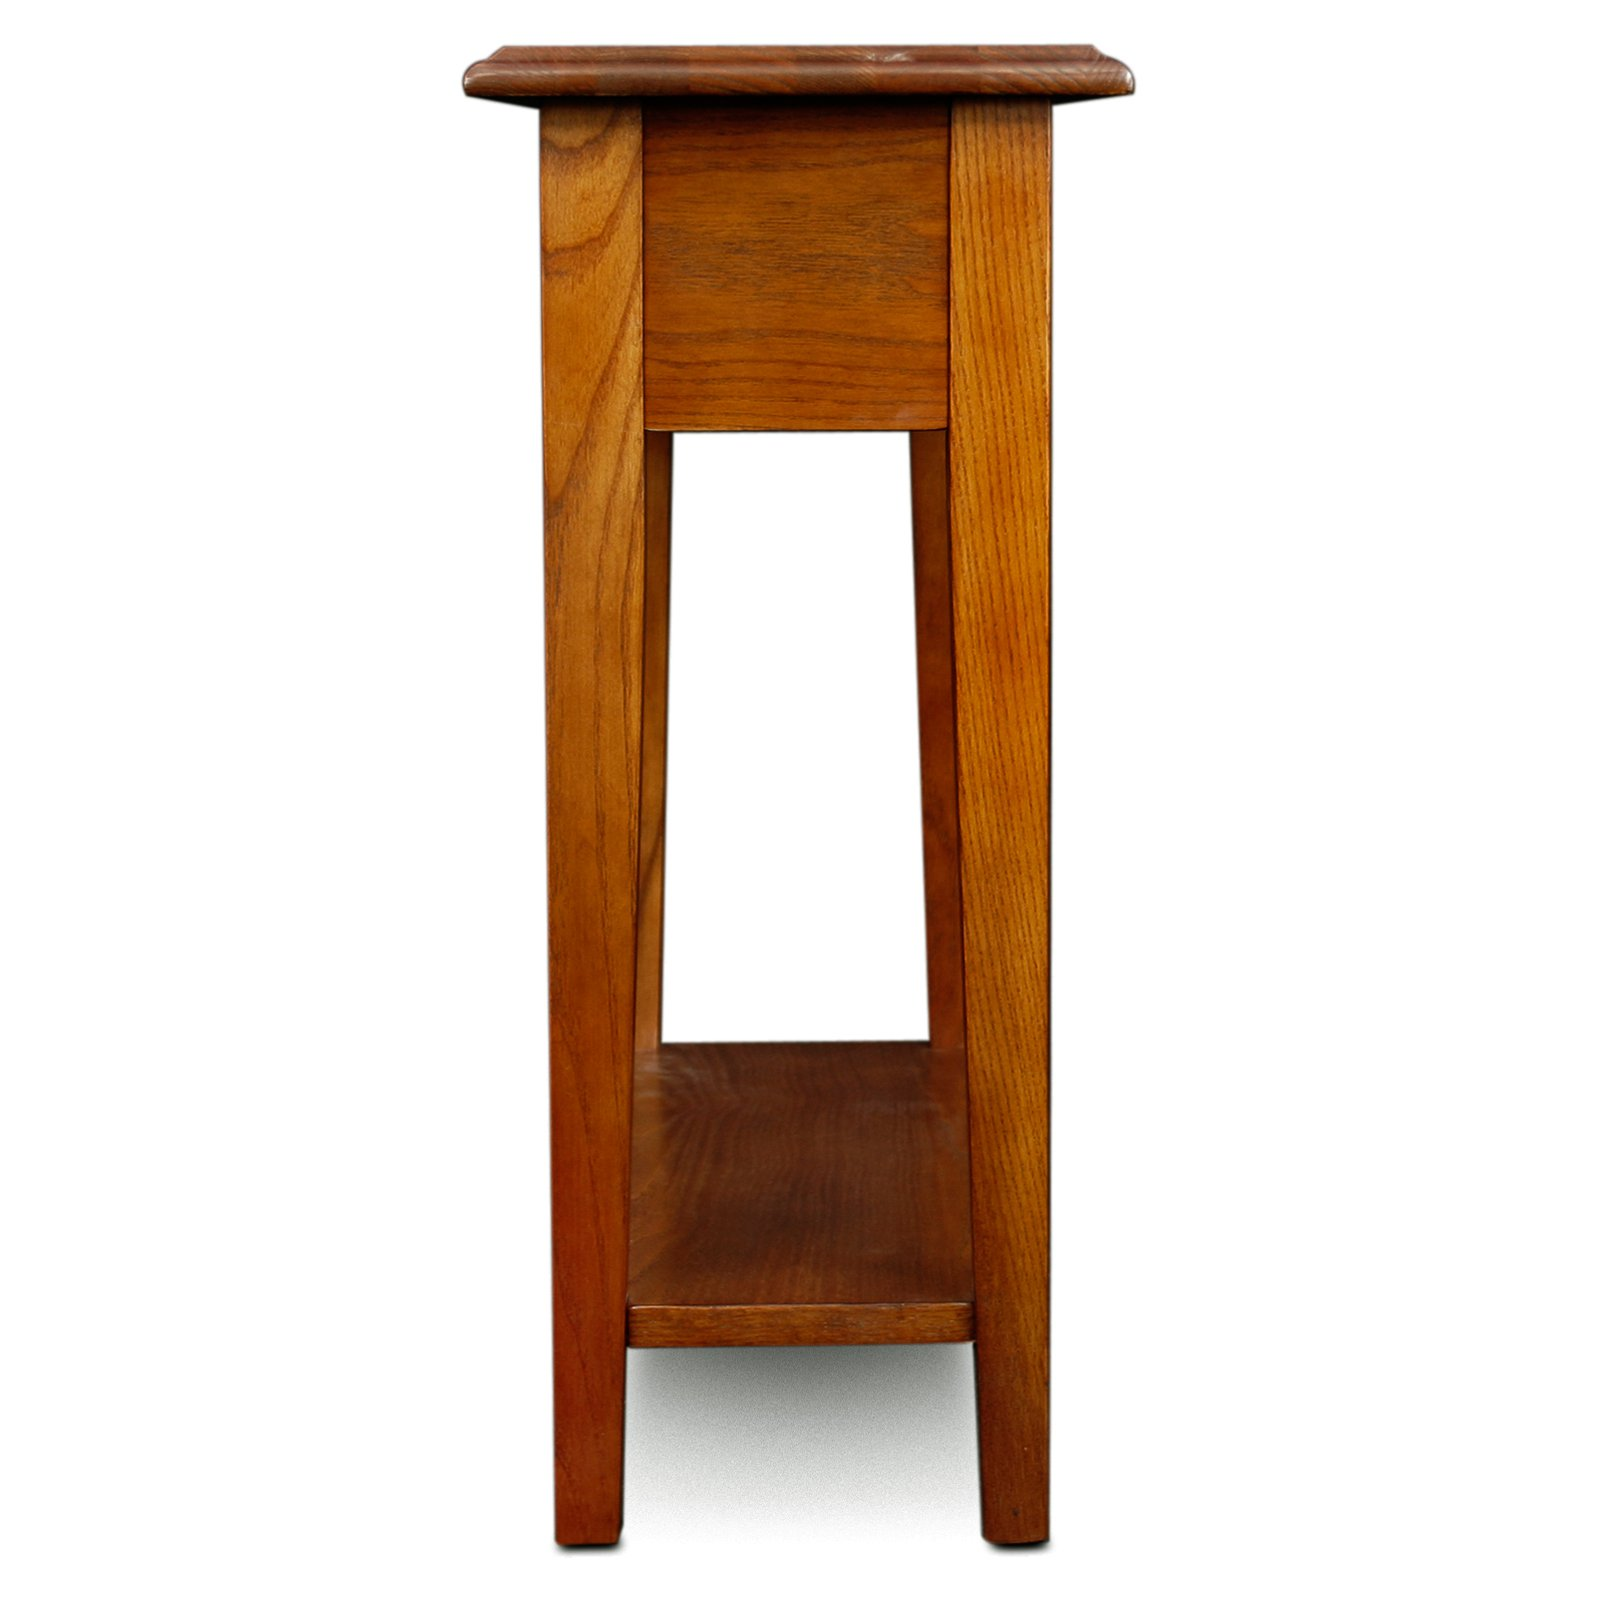 Leick Furniture Chairside End Table in Medium Oak Finish Walmart